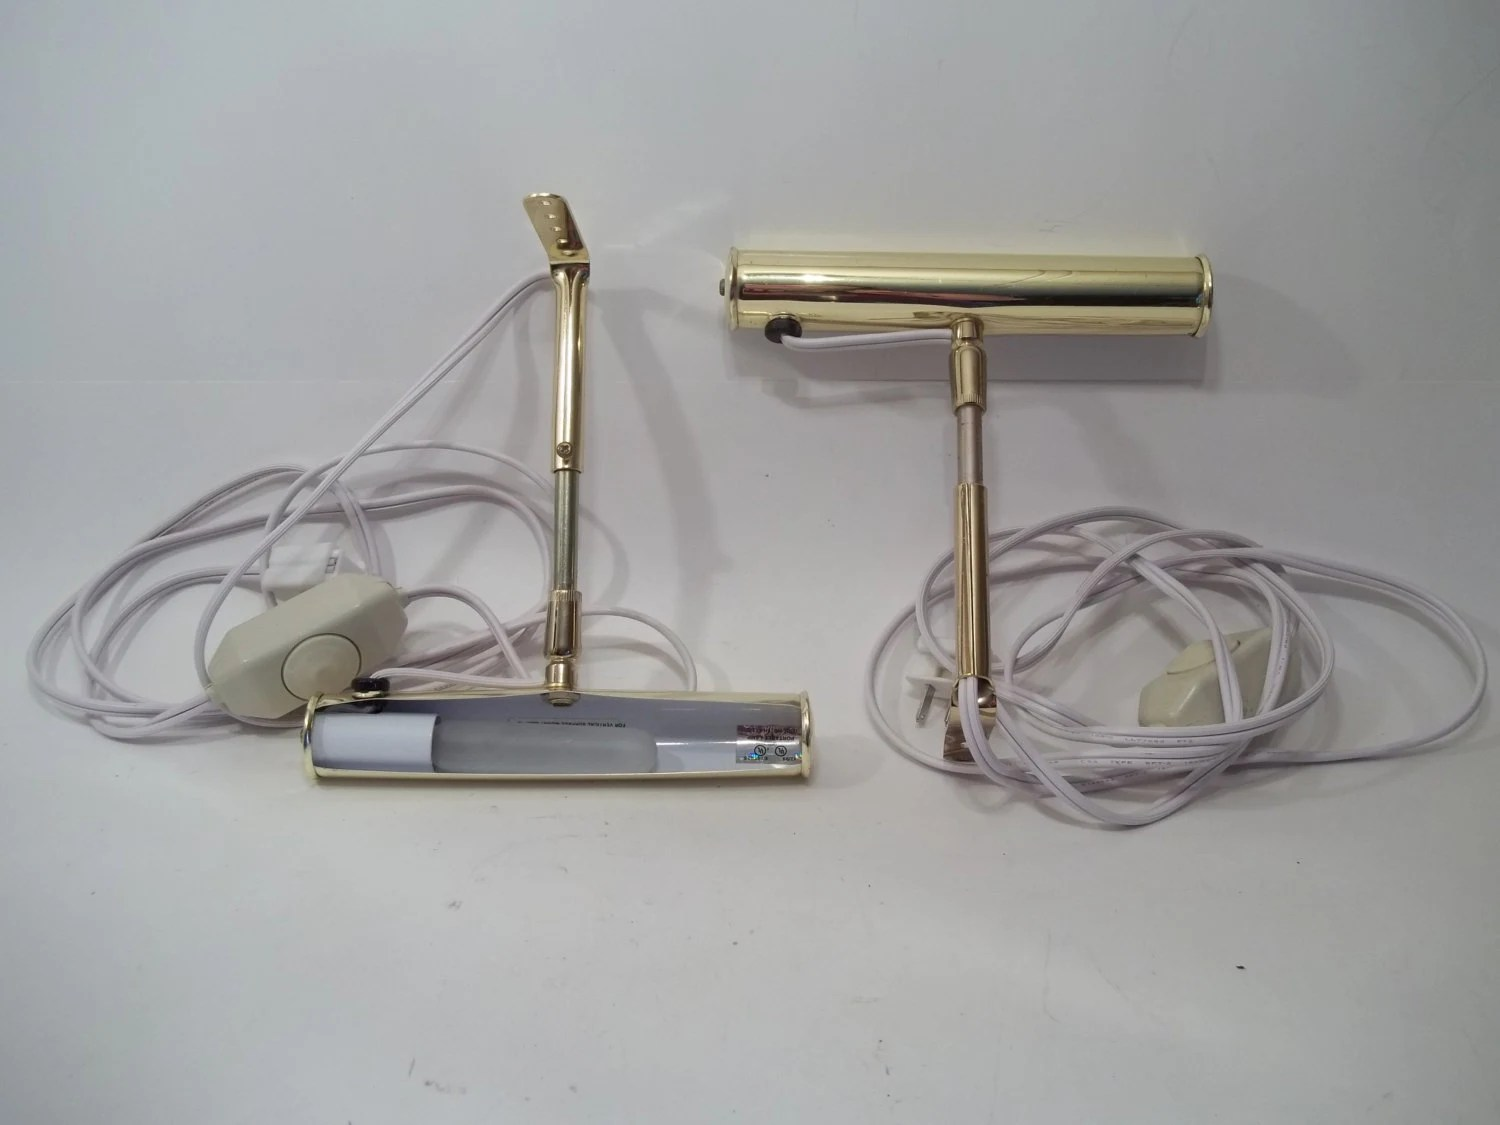 Vintage Leviton wall sconce set Brass bed by